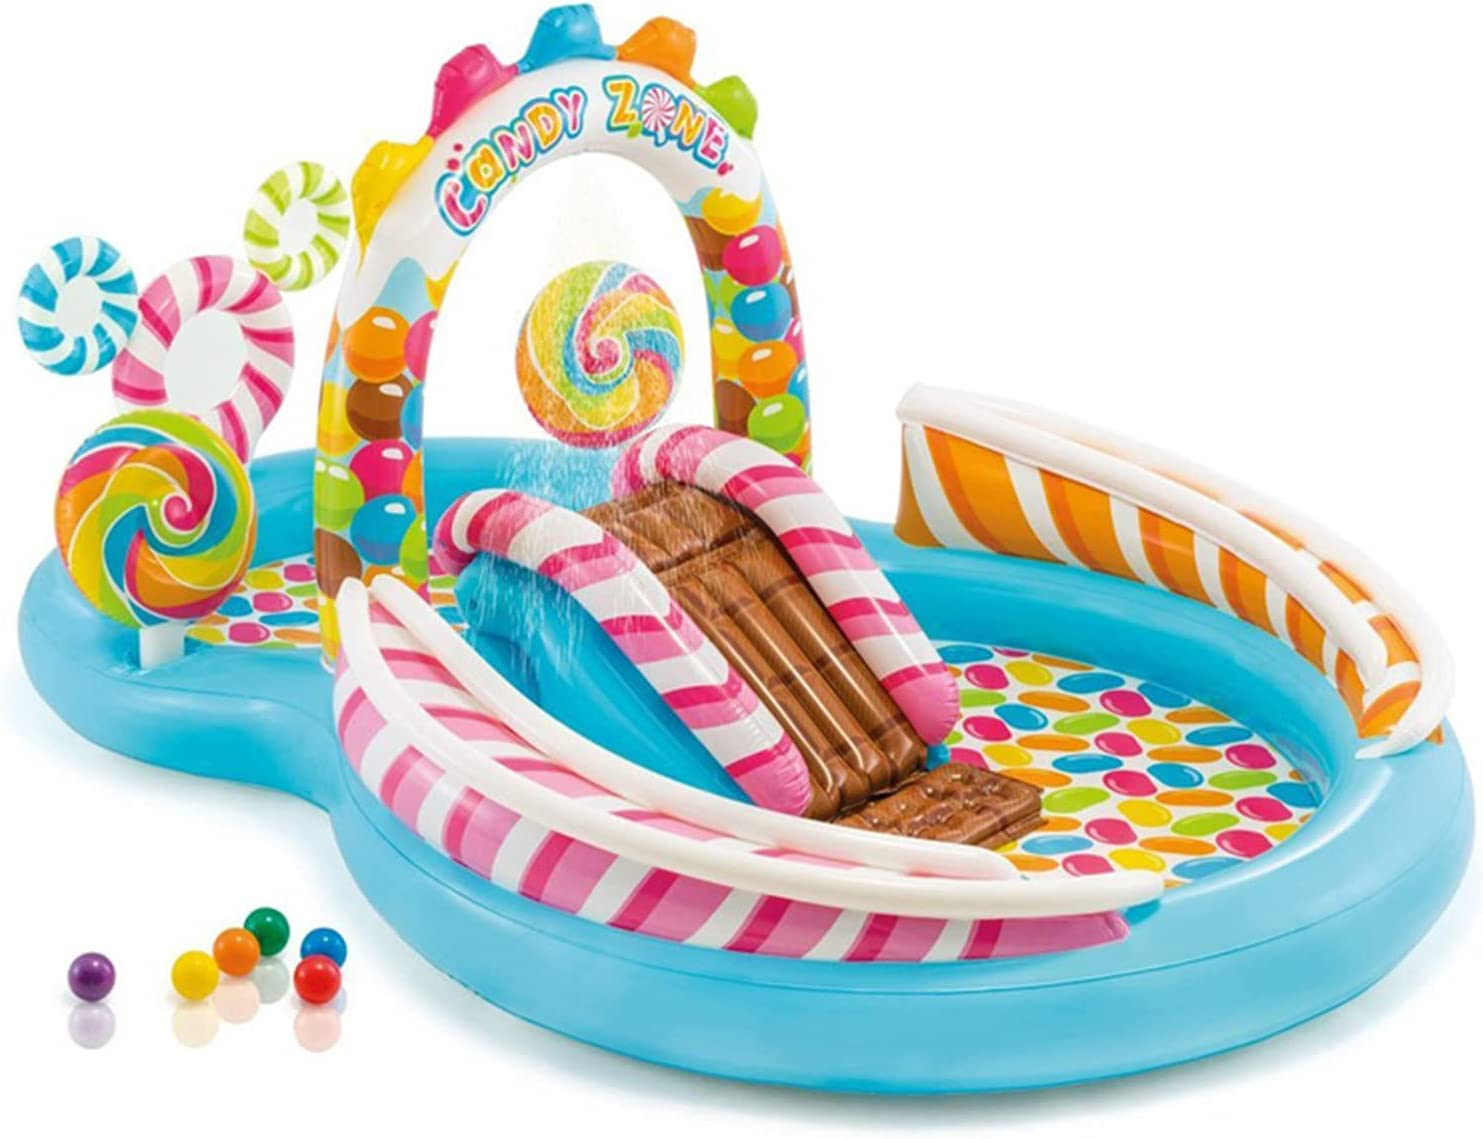 Candy Slide Inflatable Pool Max 79% OFF 116